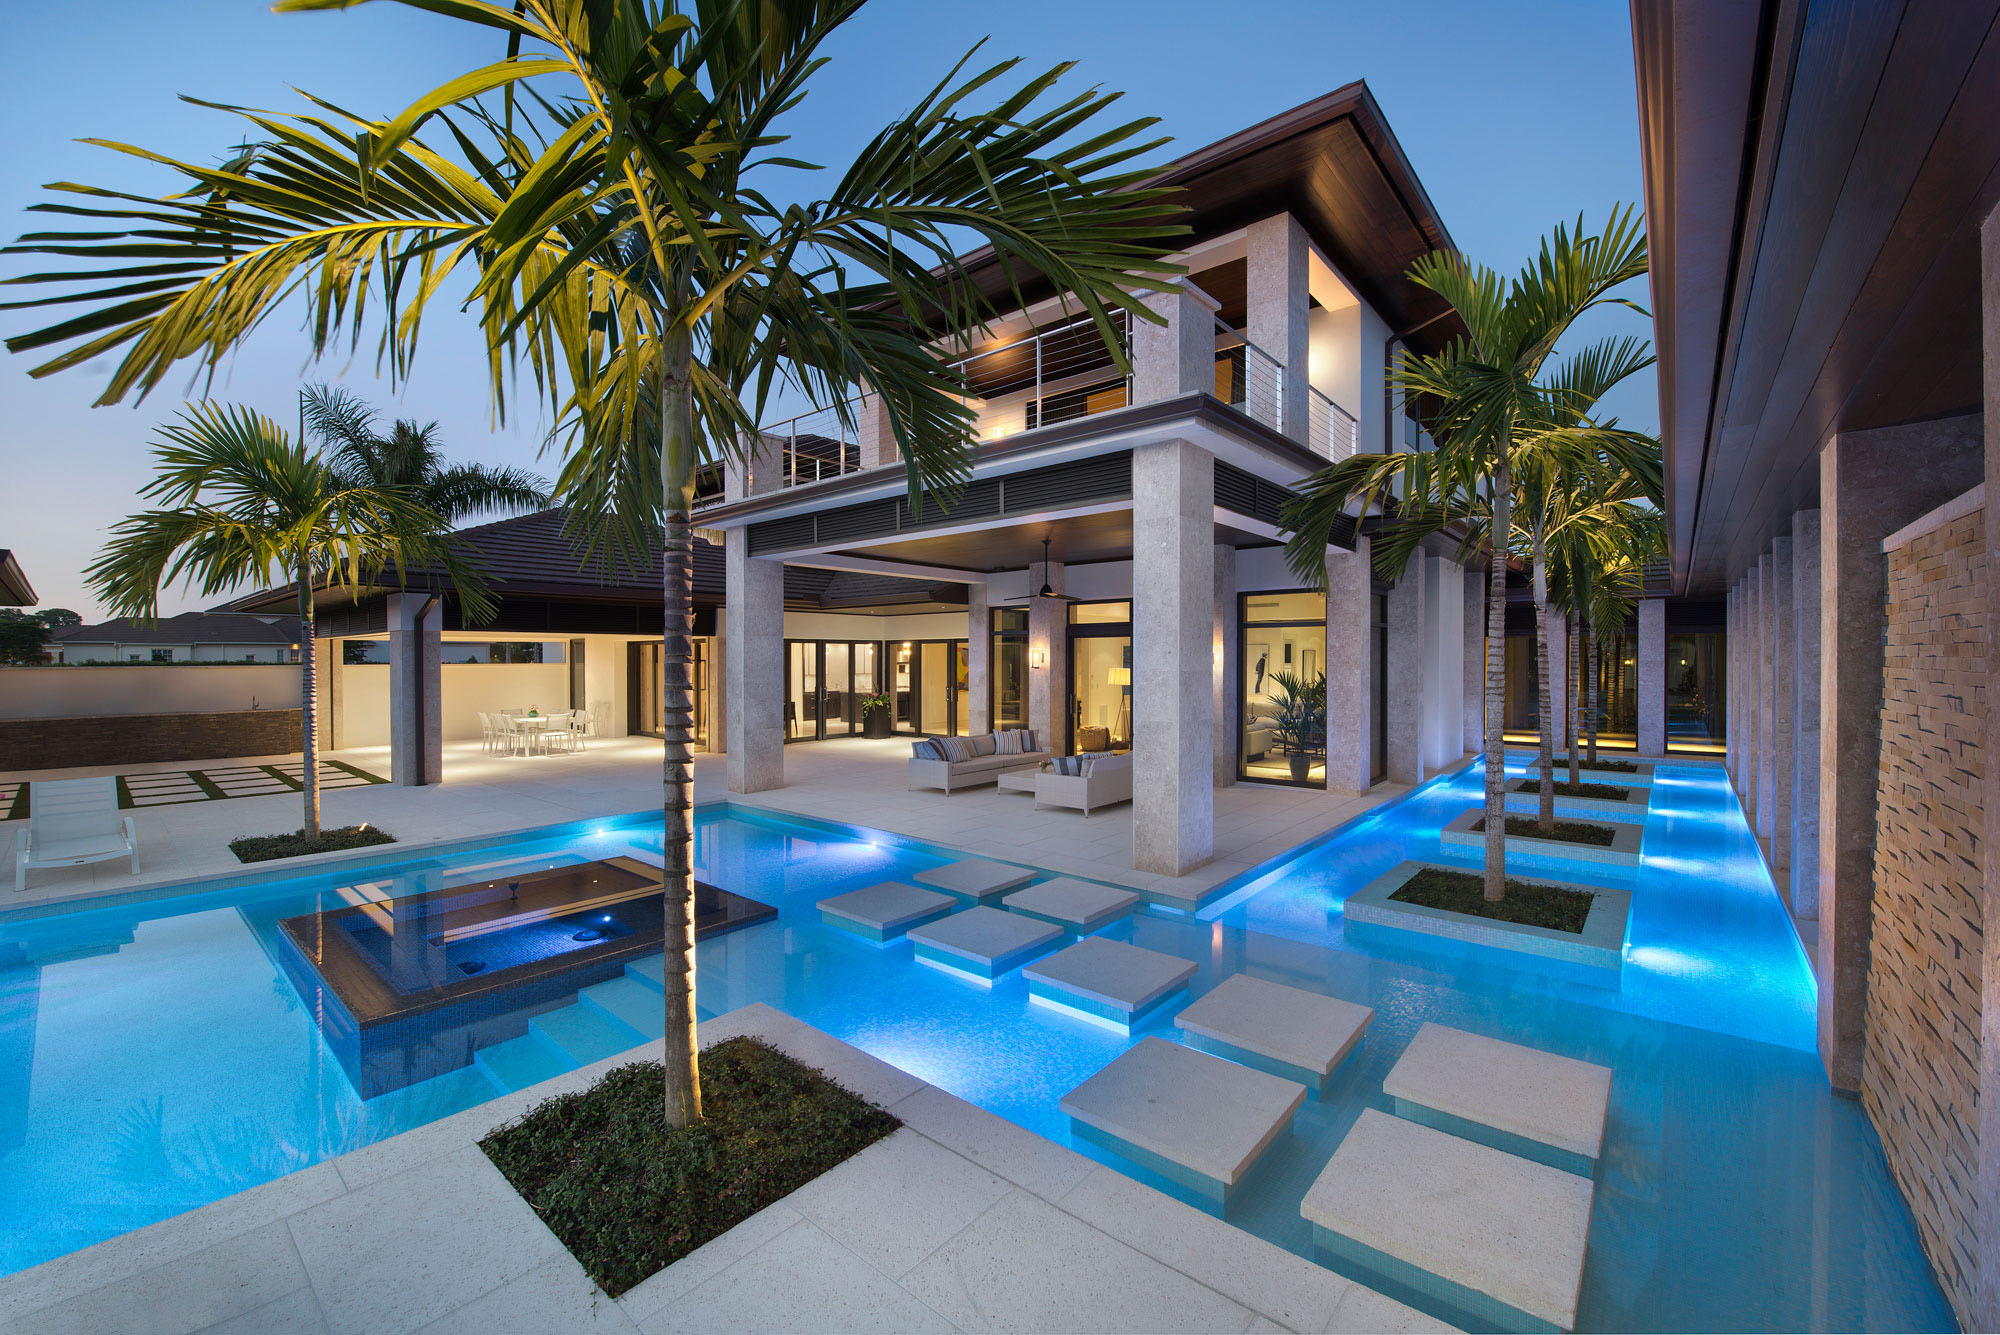 Custom dream home in florida with elegant swimming pool for Modern luxury house design